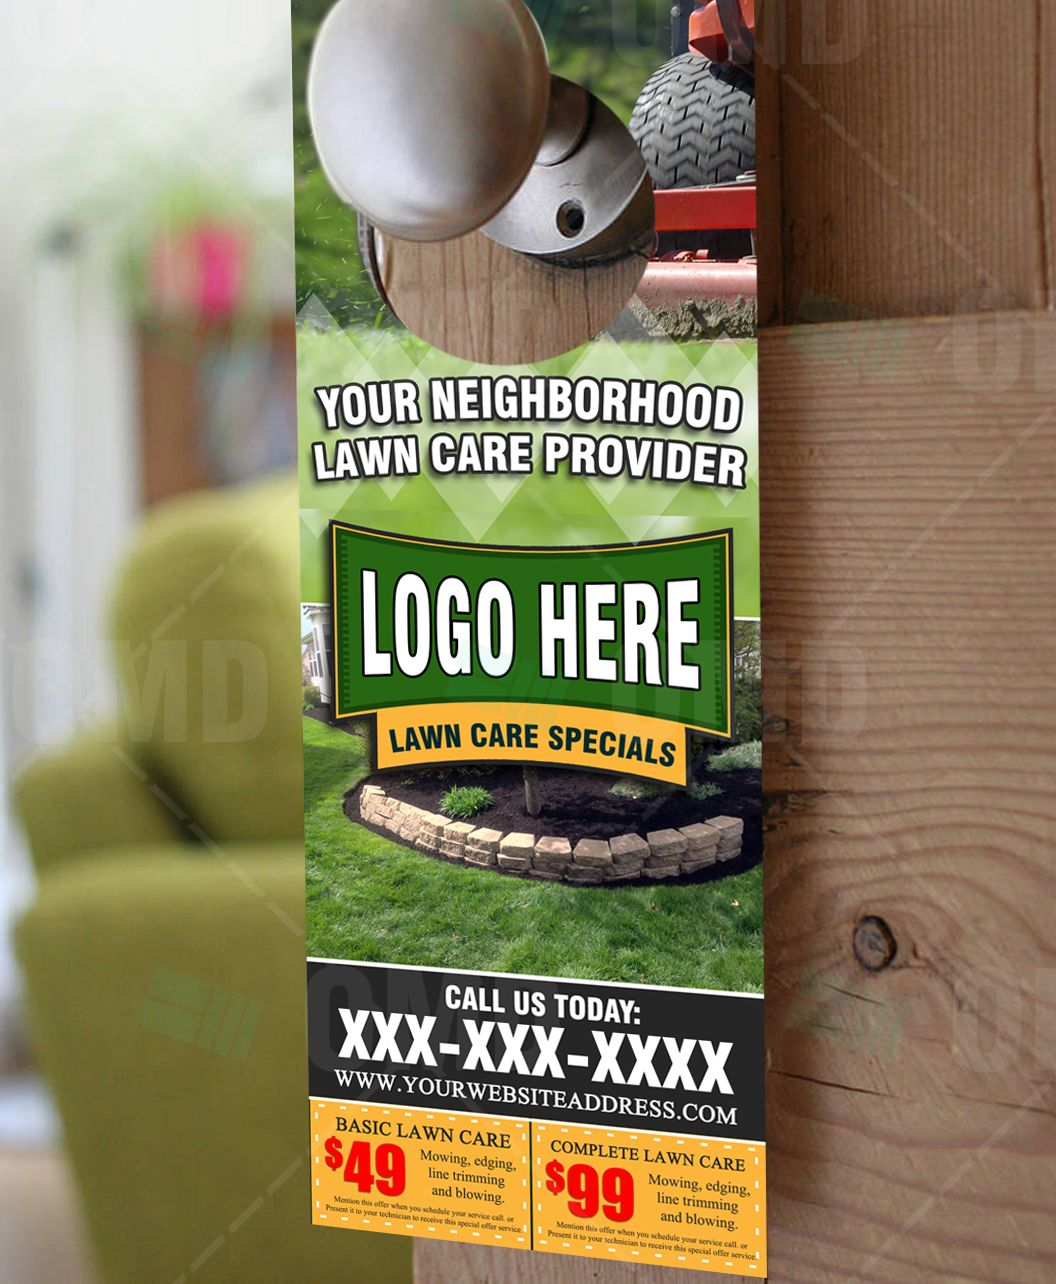 Lawn care advertising ideas - Lawn Care Door Hanger Template By The Lawn Market Advertise With This Full Color Design